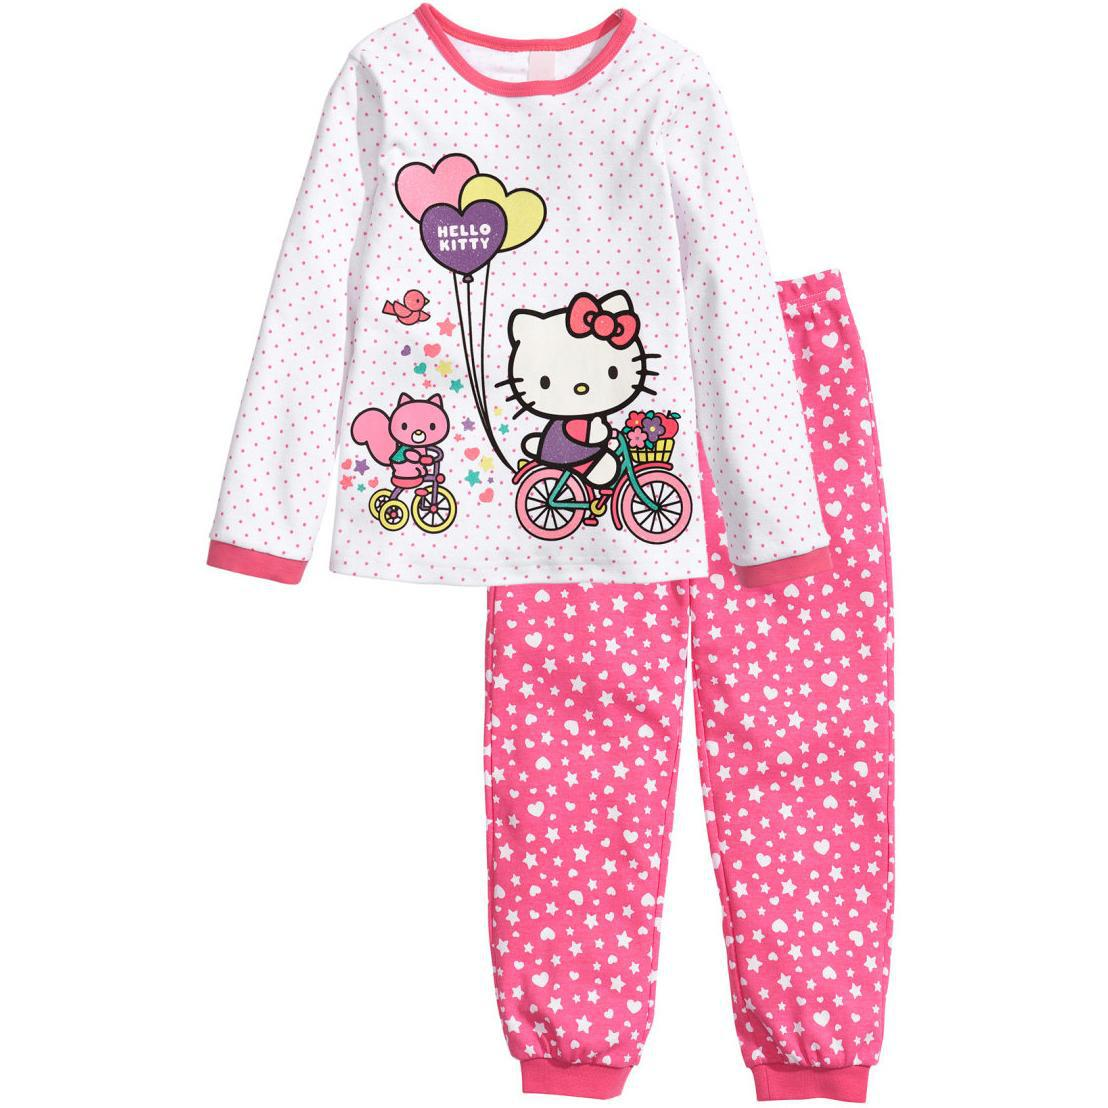 fb61e763eed2 New Promotion Child Nightwear Pajama Set Cotton Long Girl Heart ...